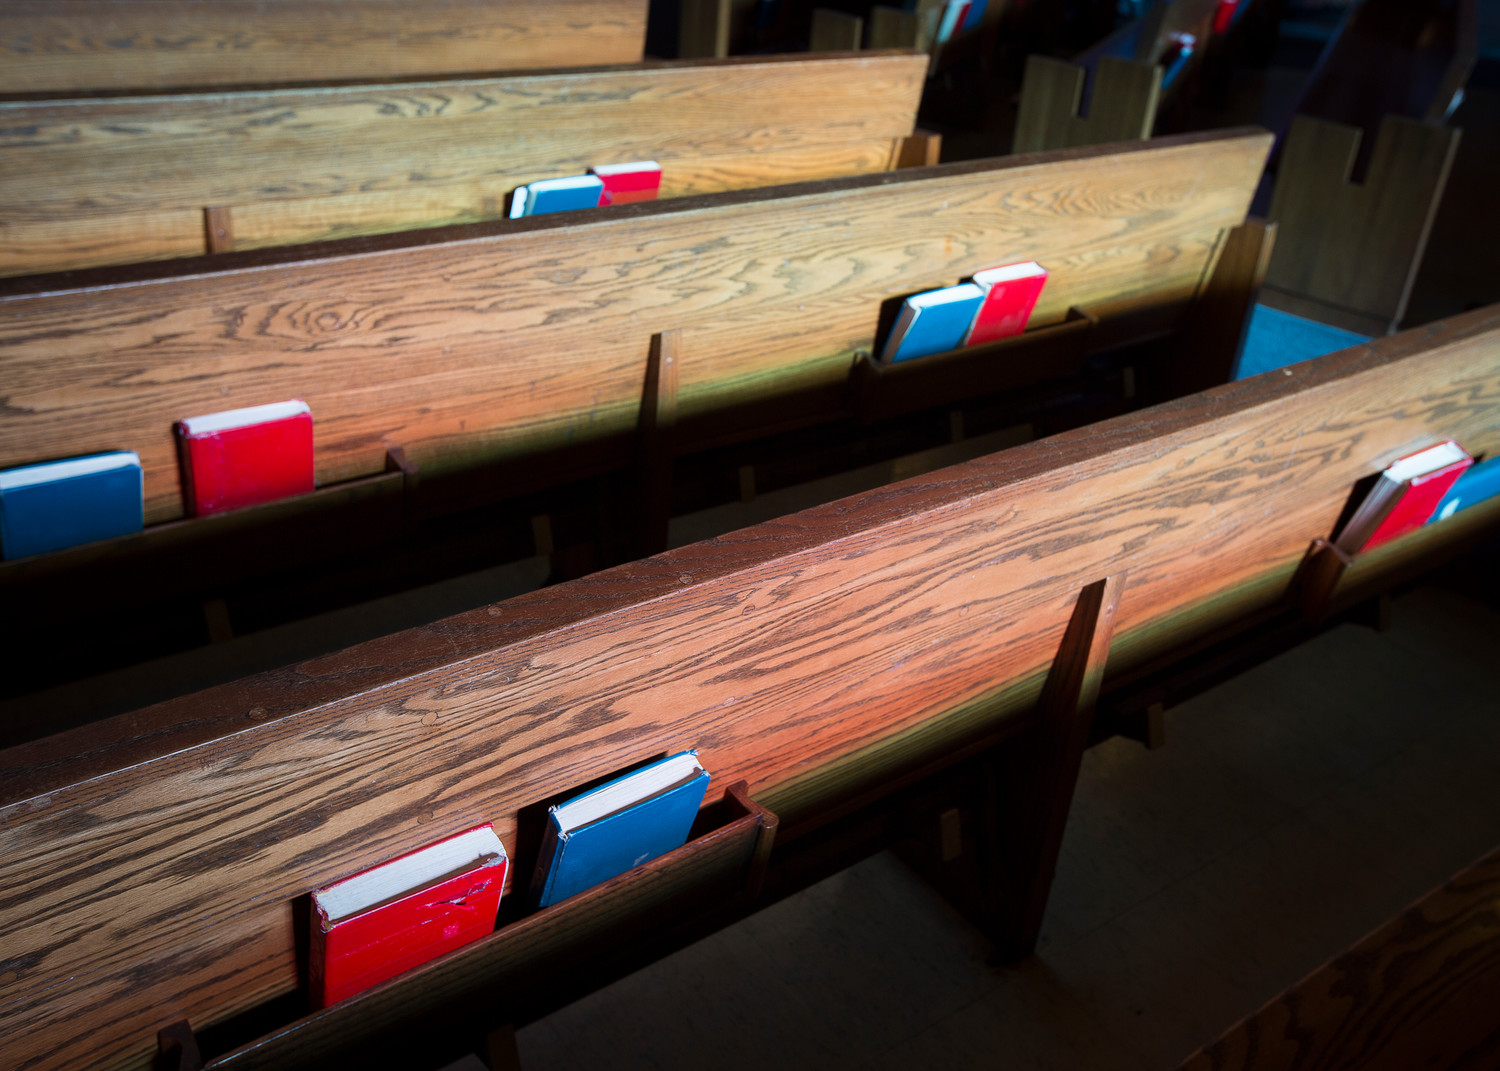 Pews are seen at St. Camillus Church in Silver Spring, Maryland, April 10.